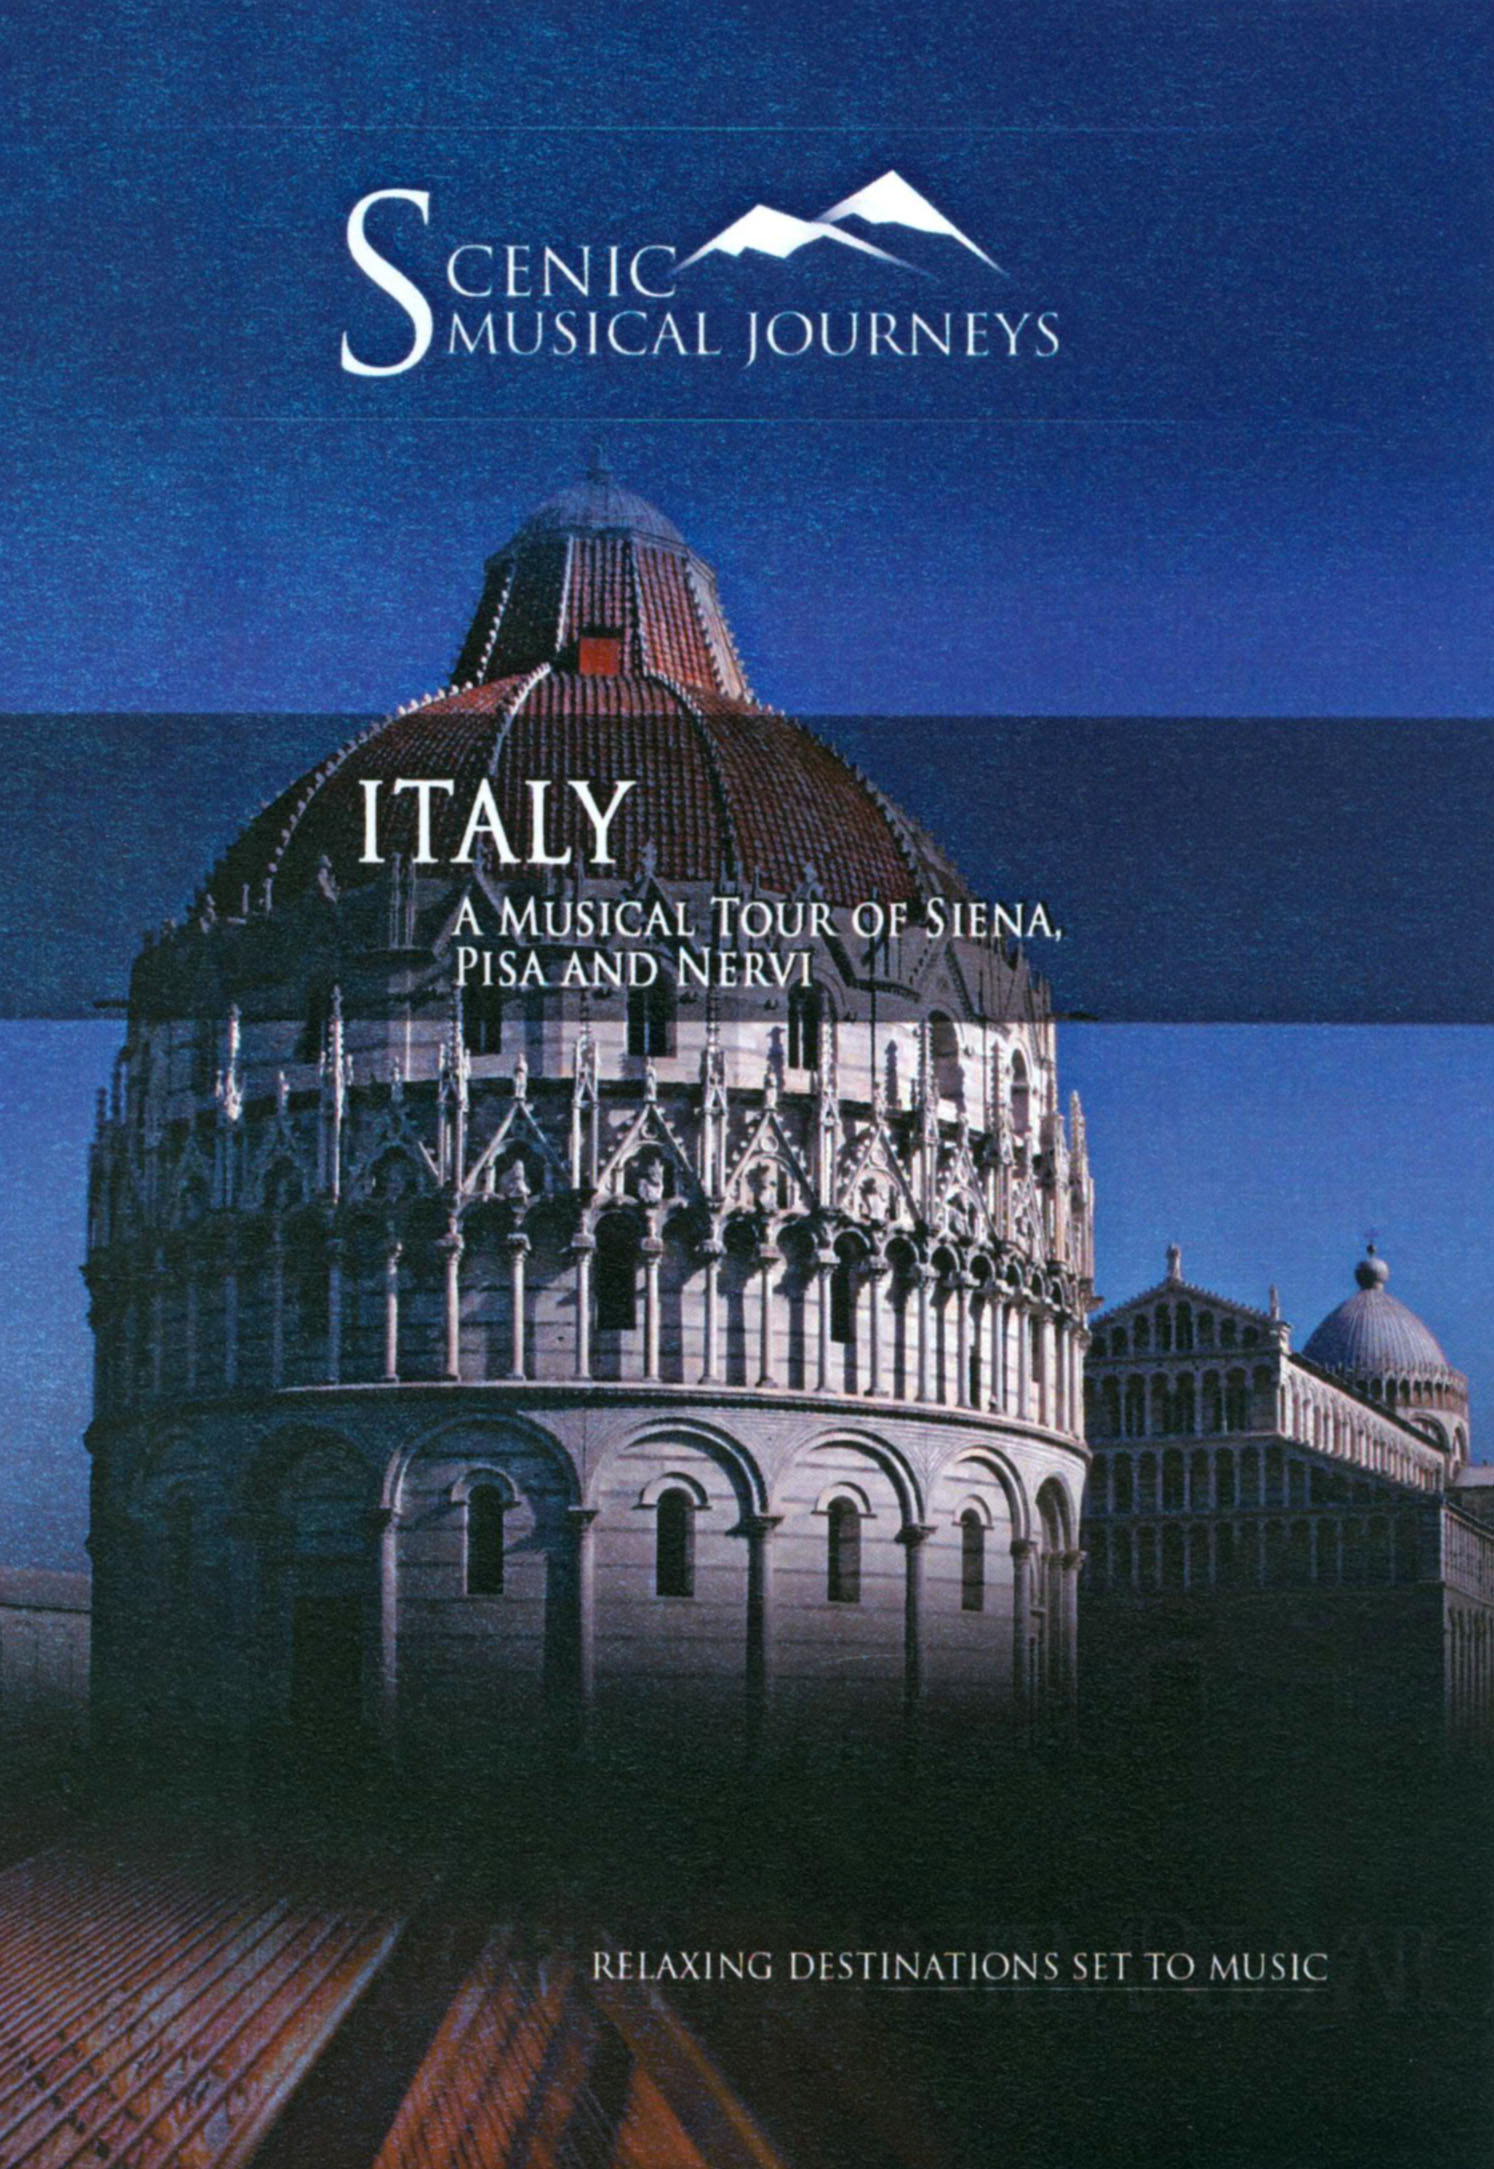 Scenic Musical Journeys: Italy - A Musical Tour of Siena, Pisa and Nervi